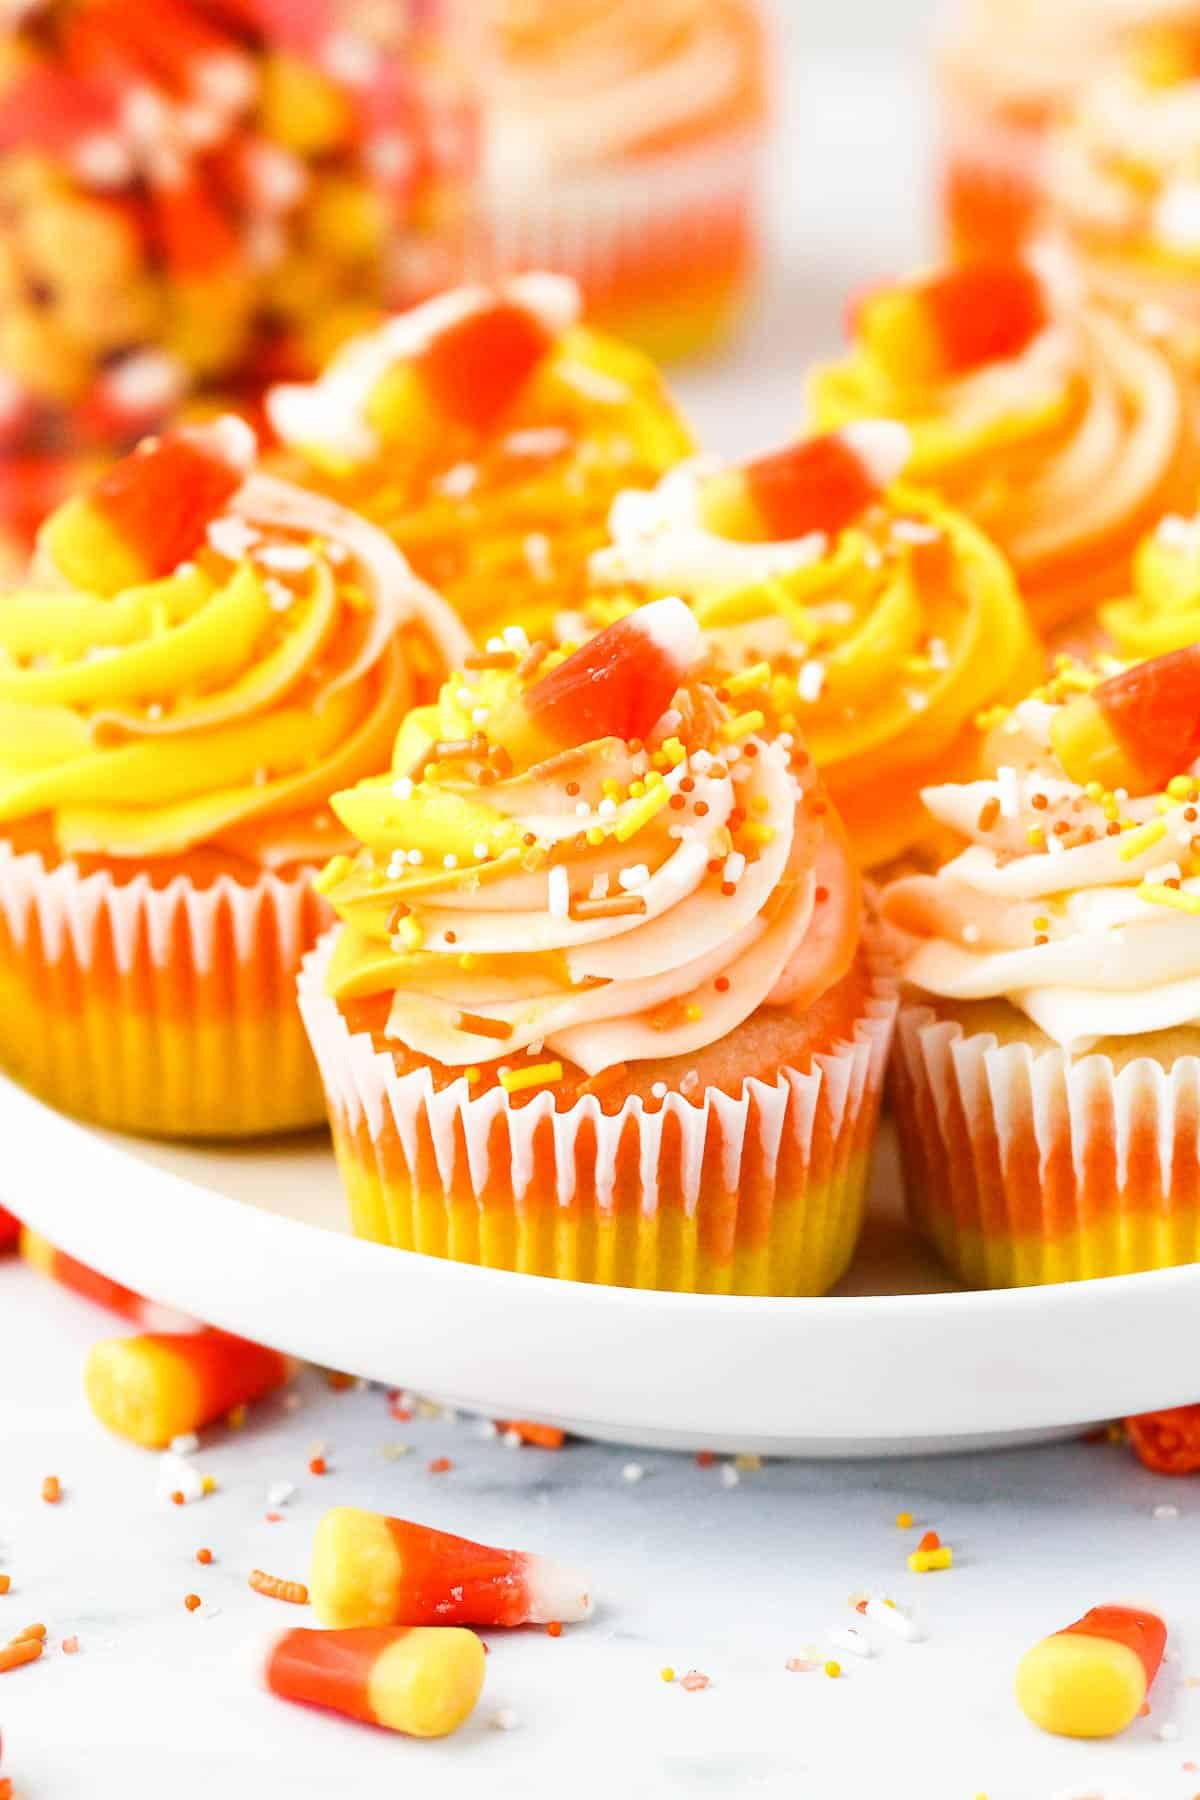 A white plate with cupcakes decorated to look like candy corn